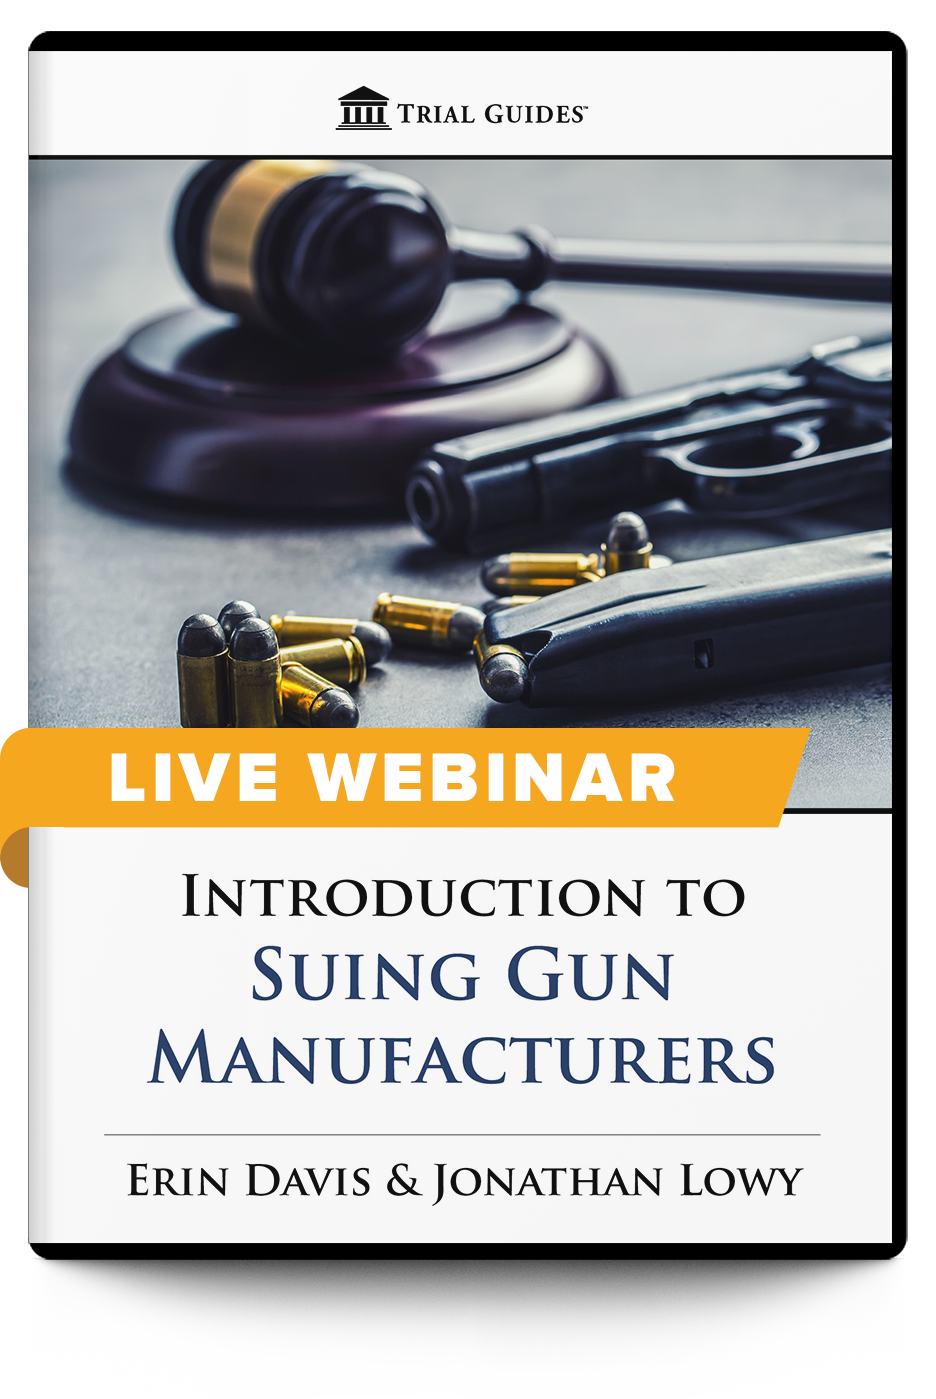 Introduction to Suing Gun Manufacturers - Live Webinar